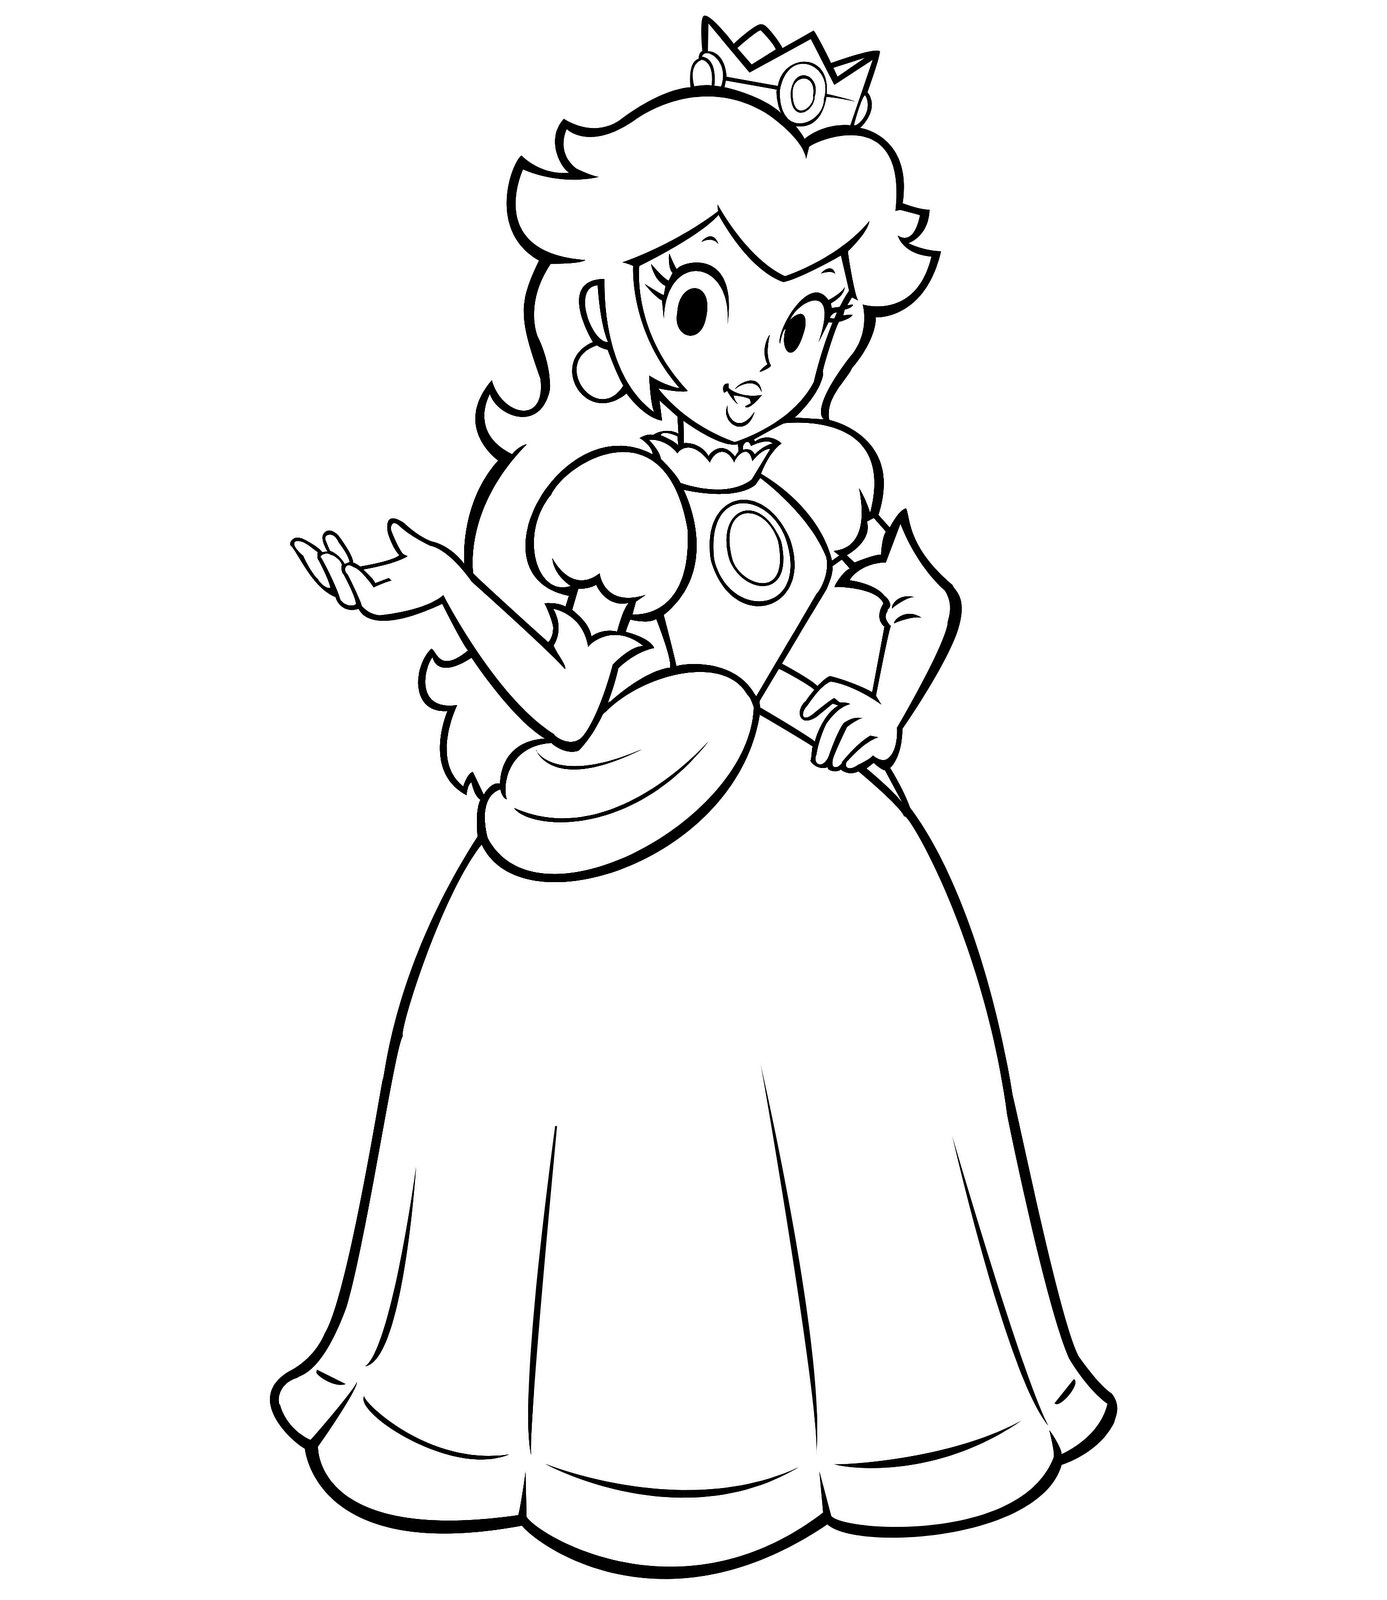 princess peach coloring pages - Coloring Pages Princess